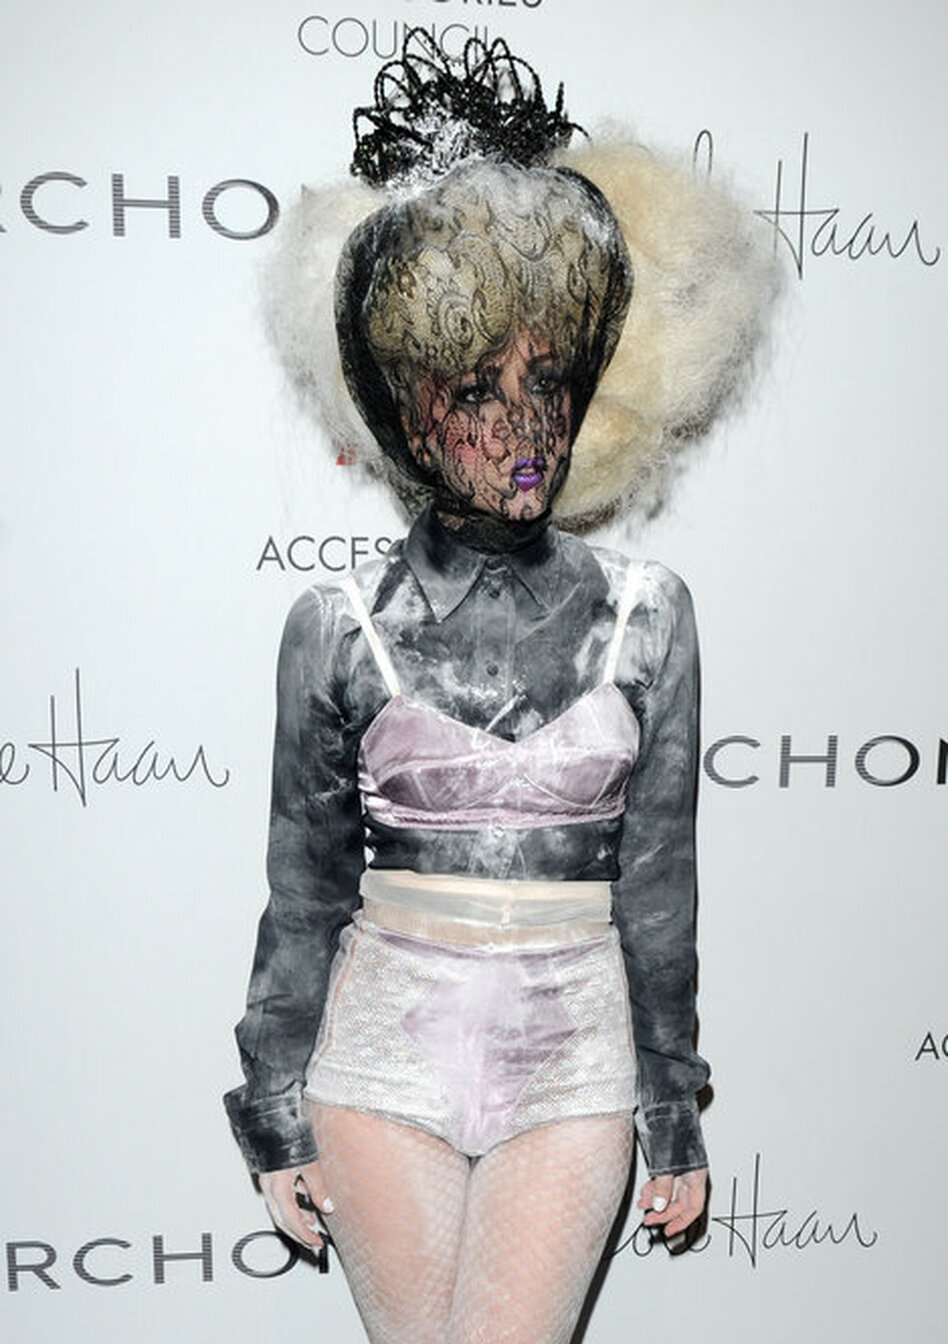 Lady Gaga attends the Ace awards on Nov. 2 in New York City.